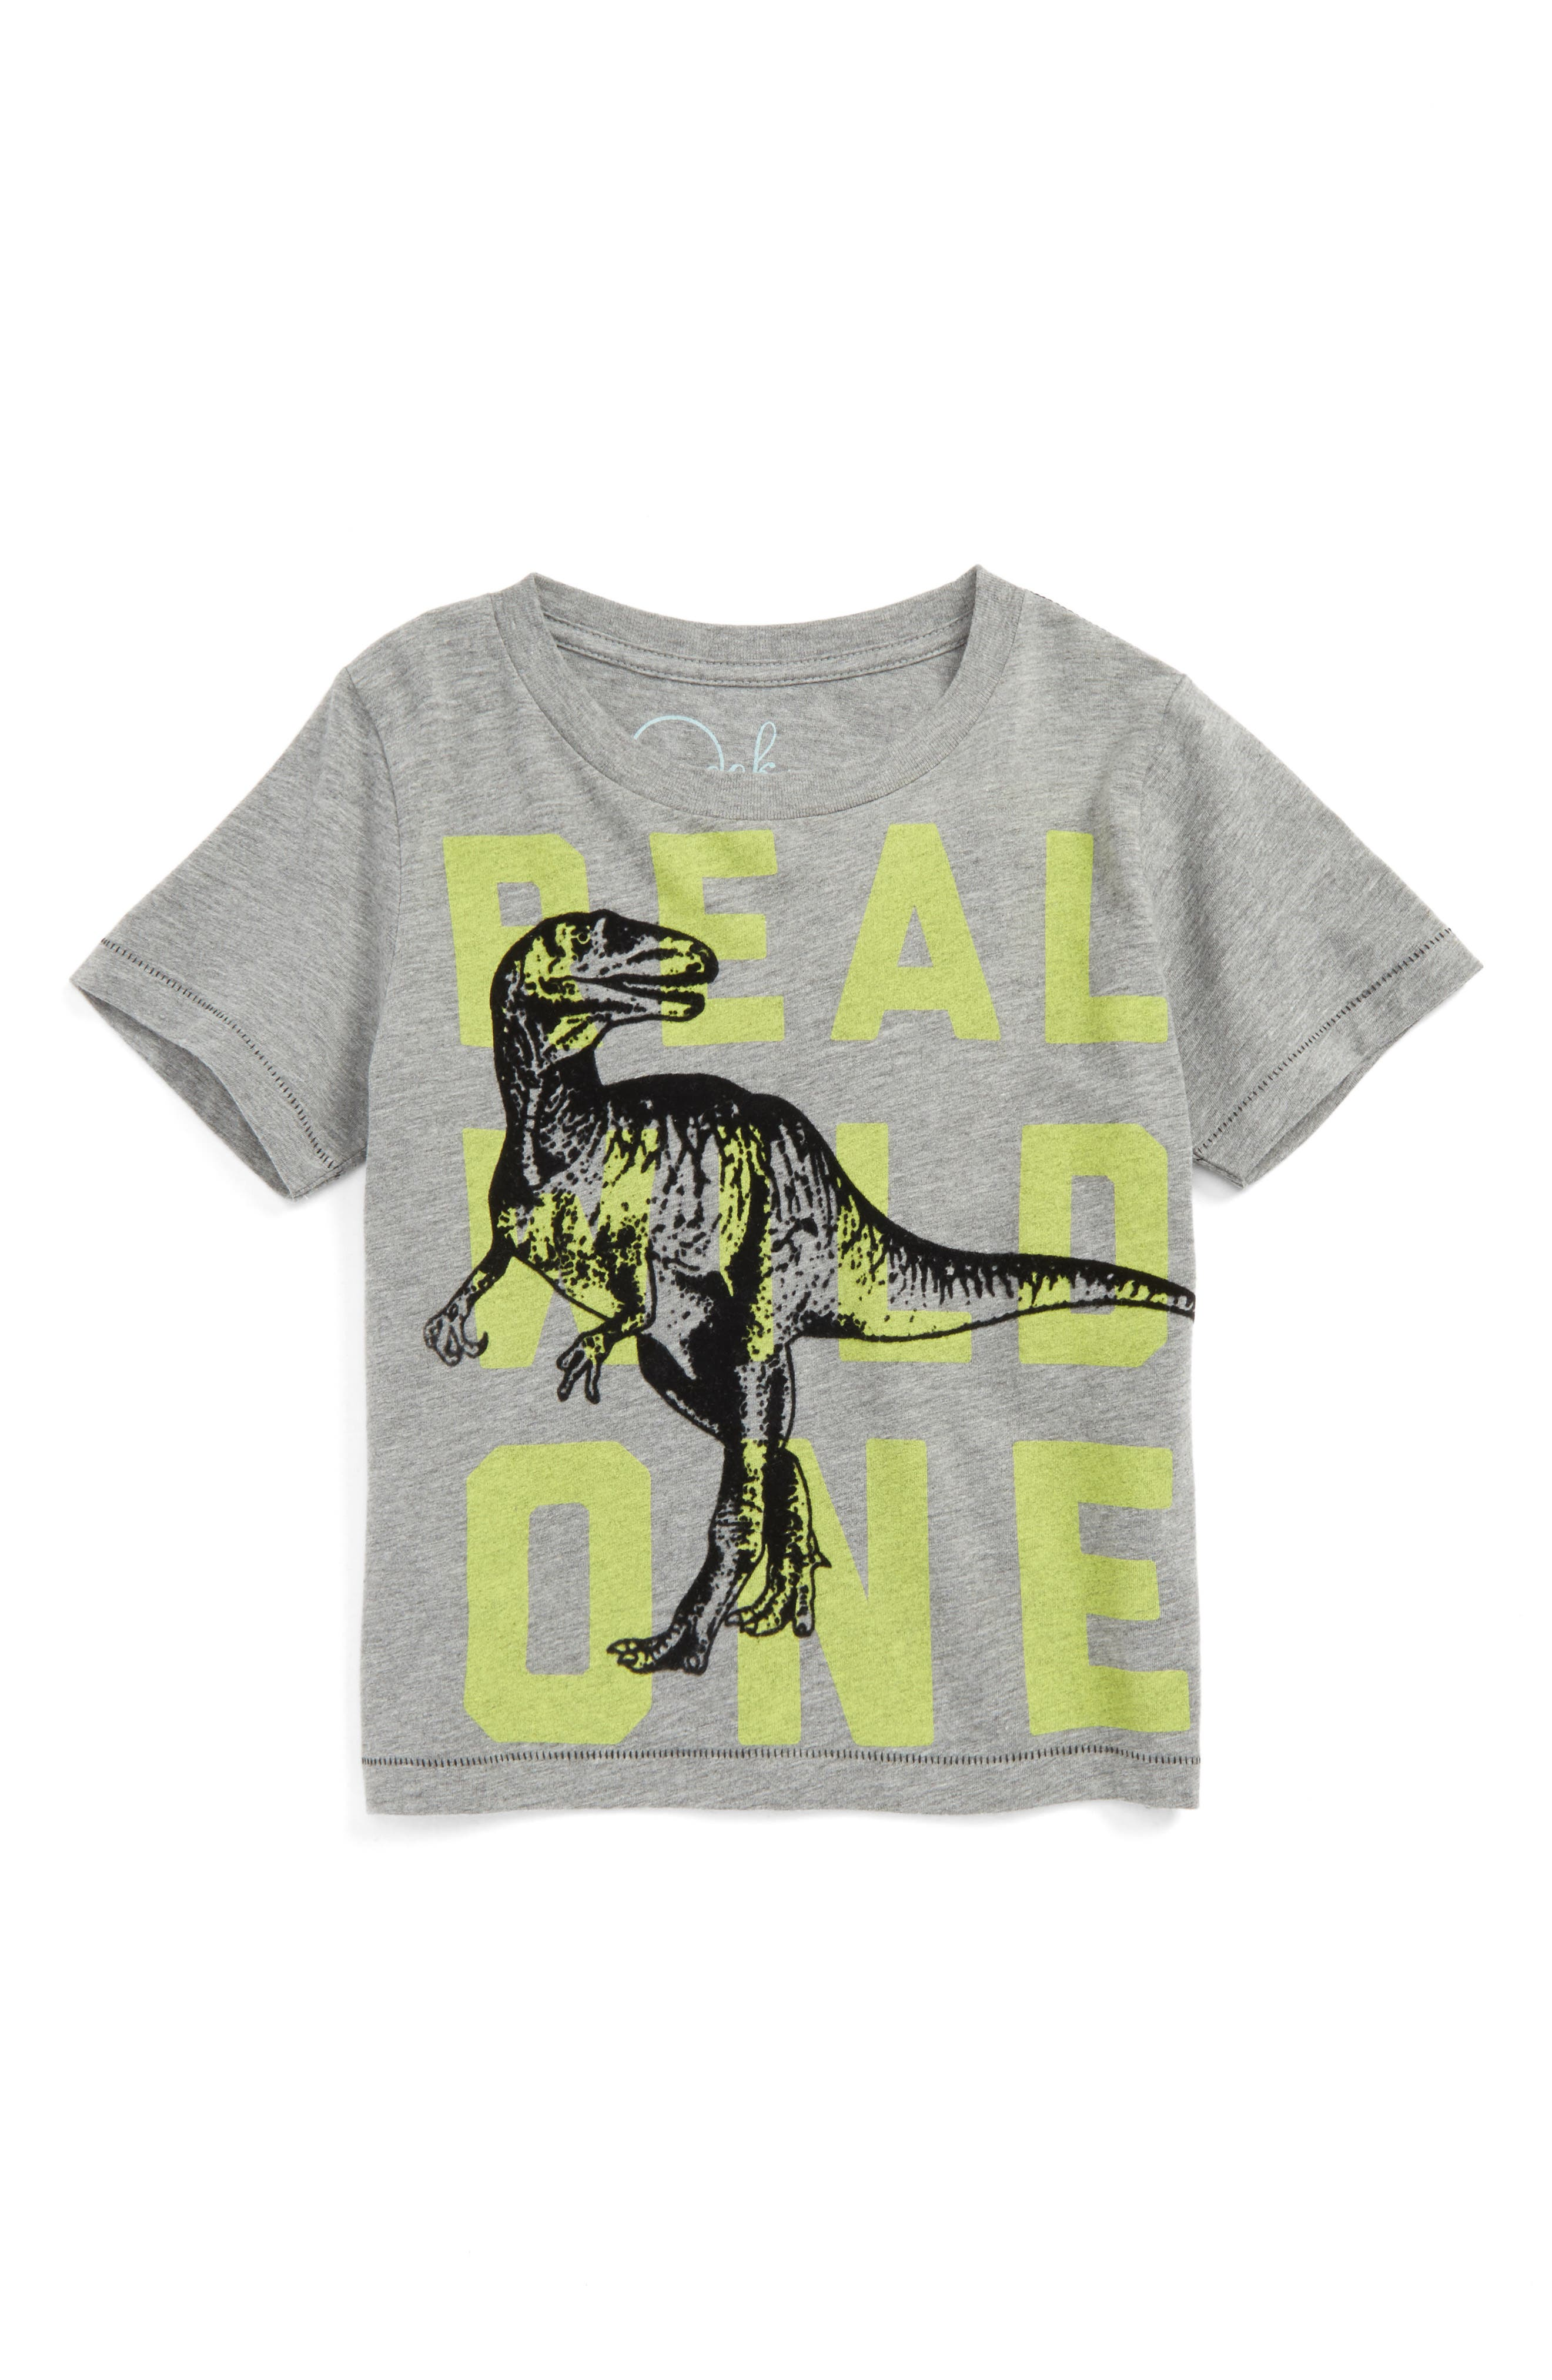 Main Image - Peek Real Wild One T-Shirt (Toddler Boys, Little Boys & Big Boys)